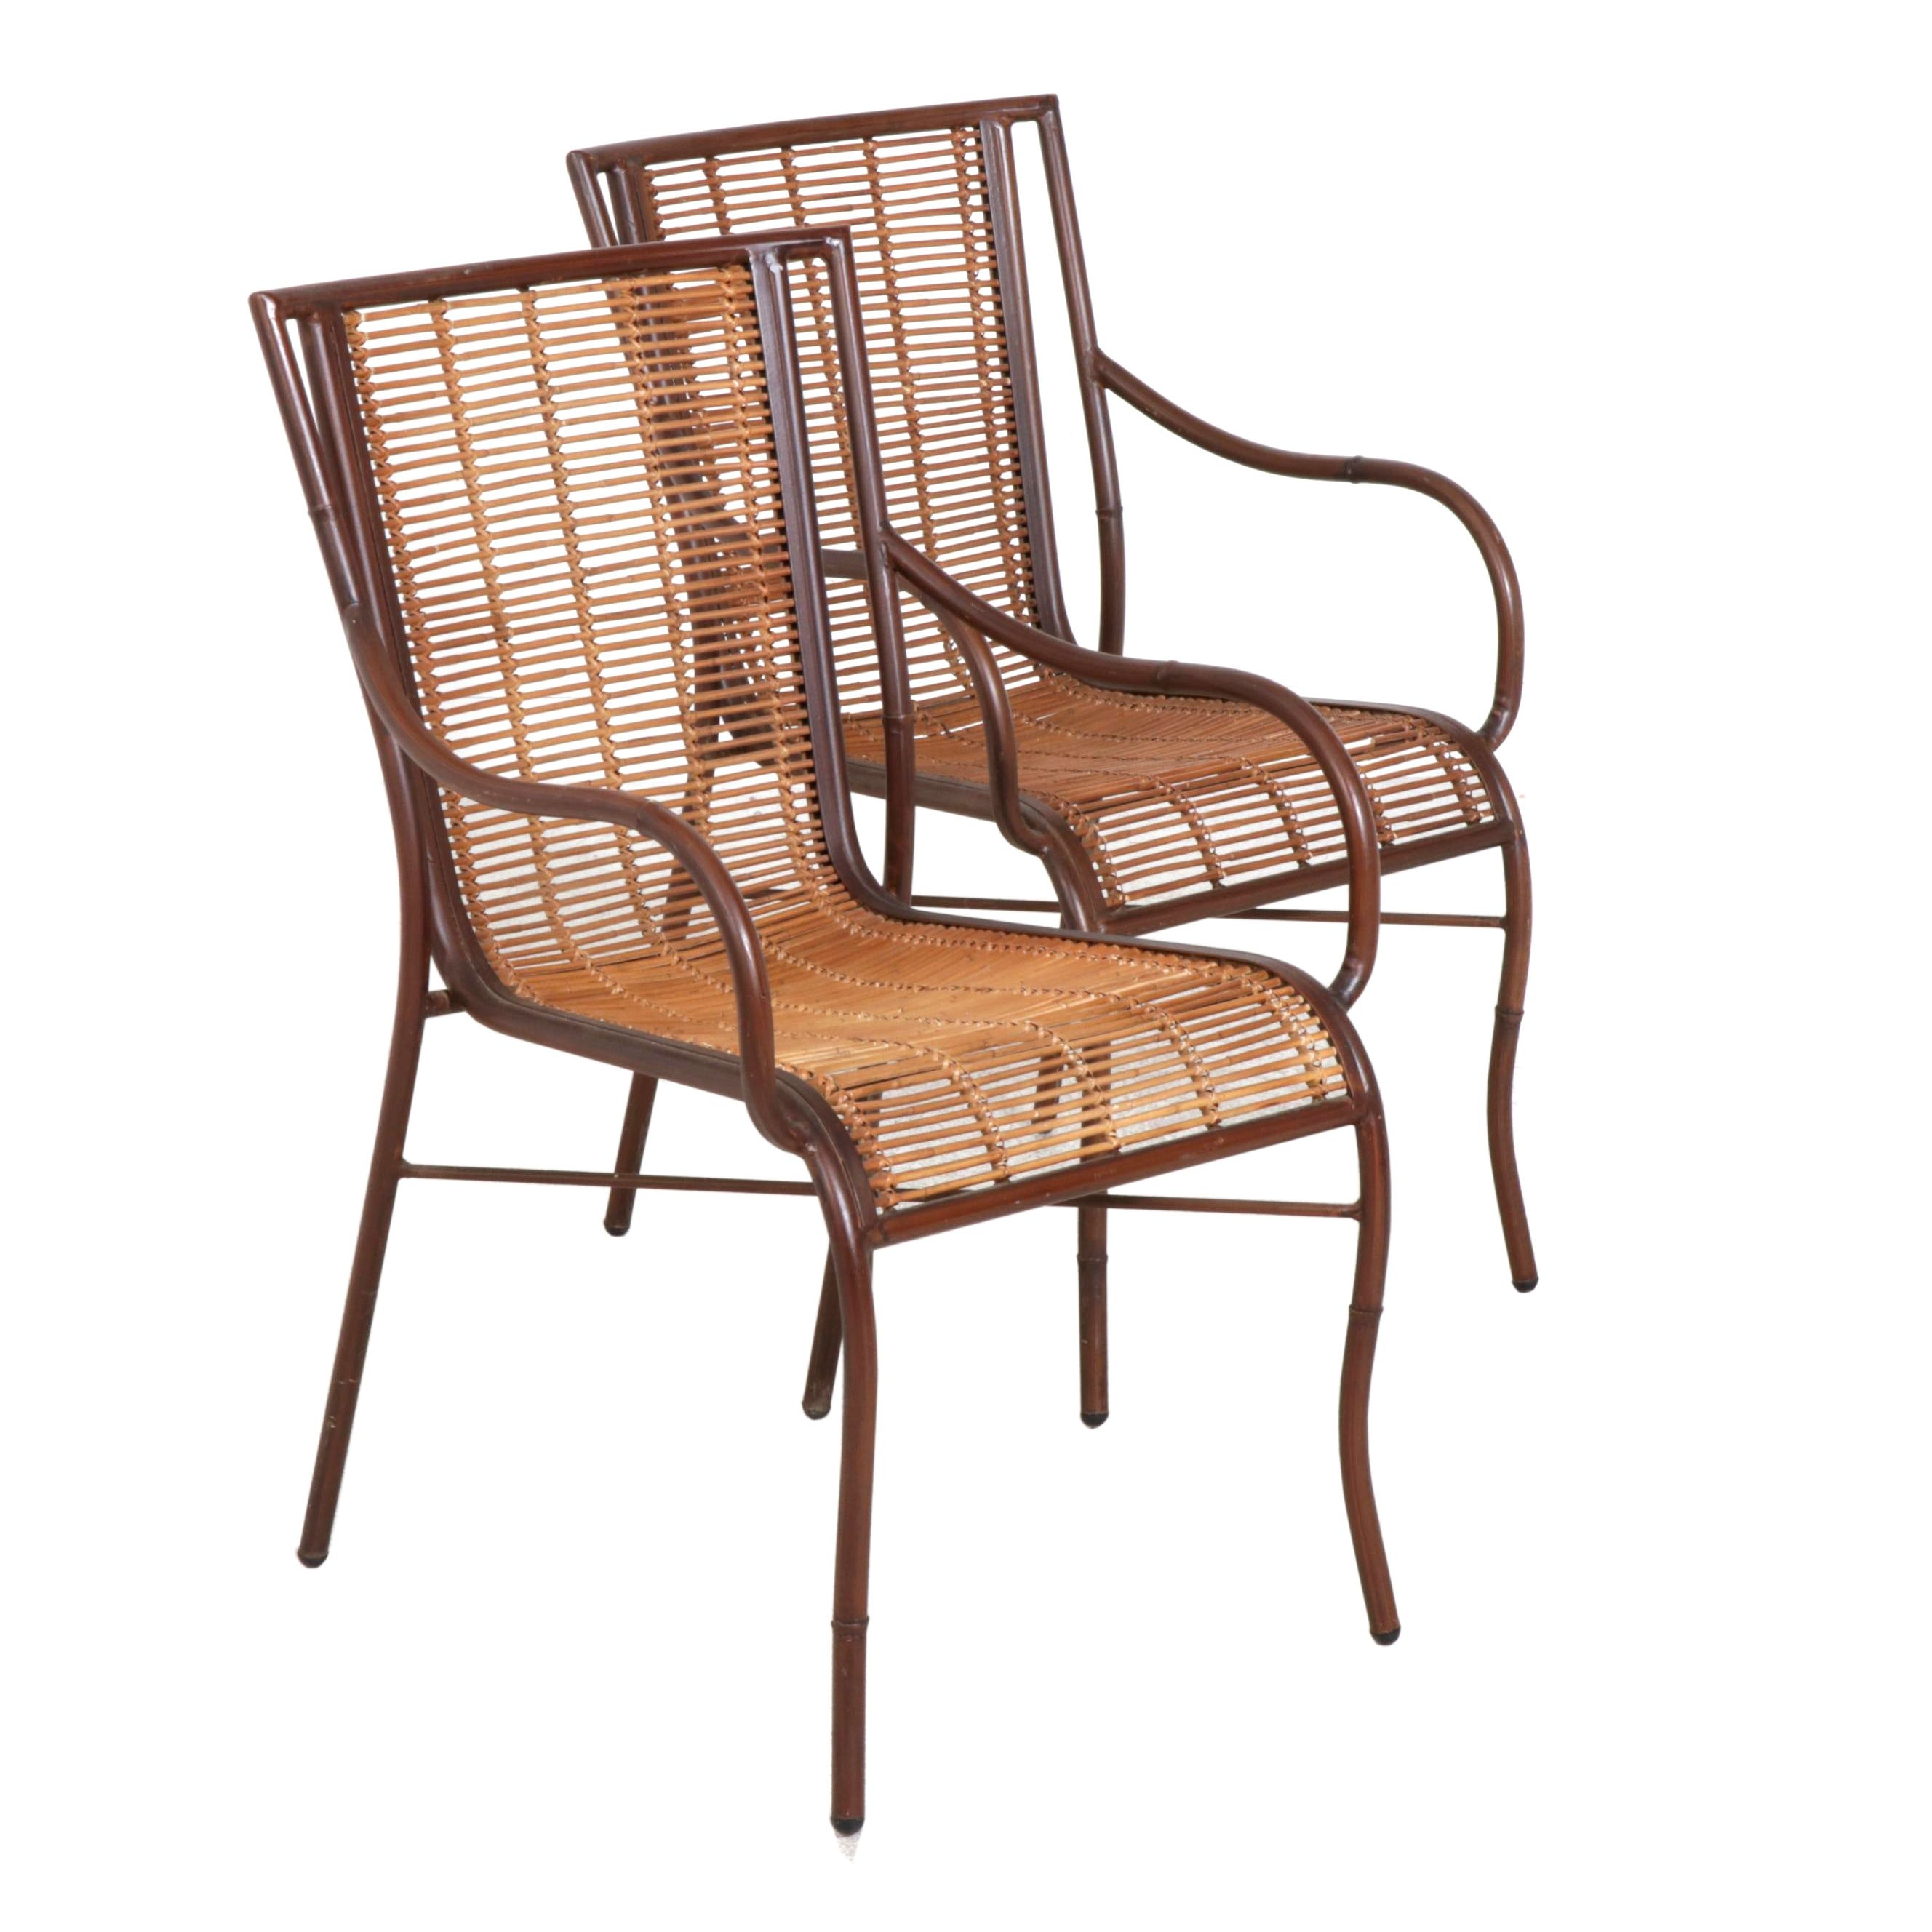 Pair of Contemporary Metal Armchairs with Cane Seats